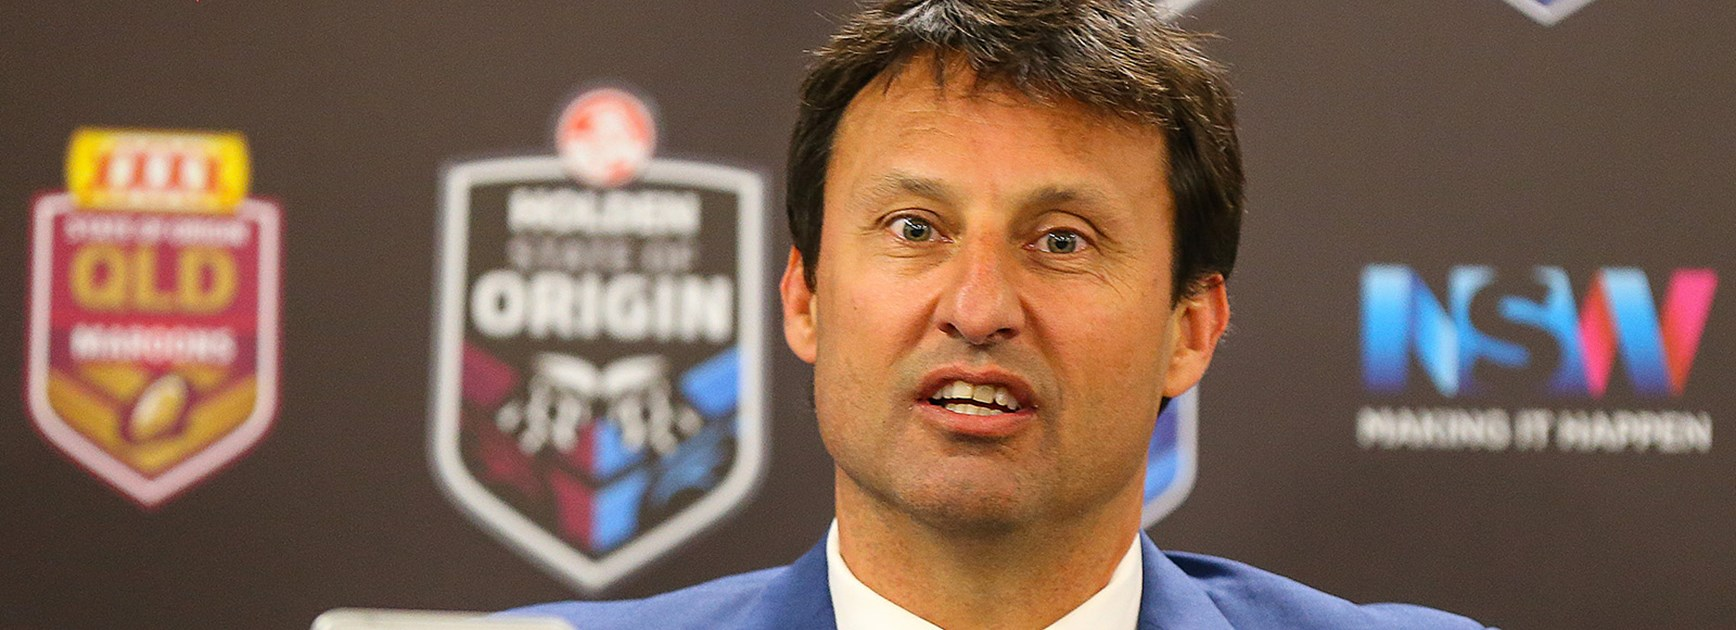 NSW coach Laurie Daley was relieved after a dramatic victory in Game Three.